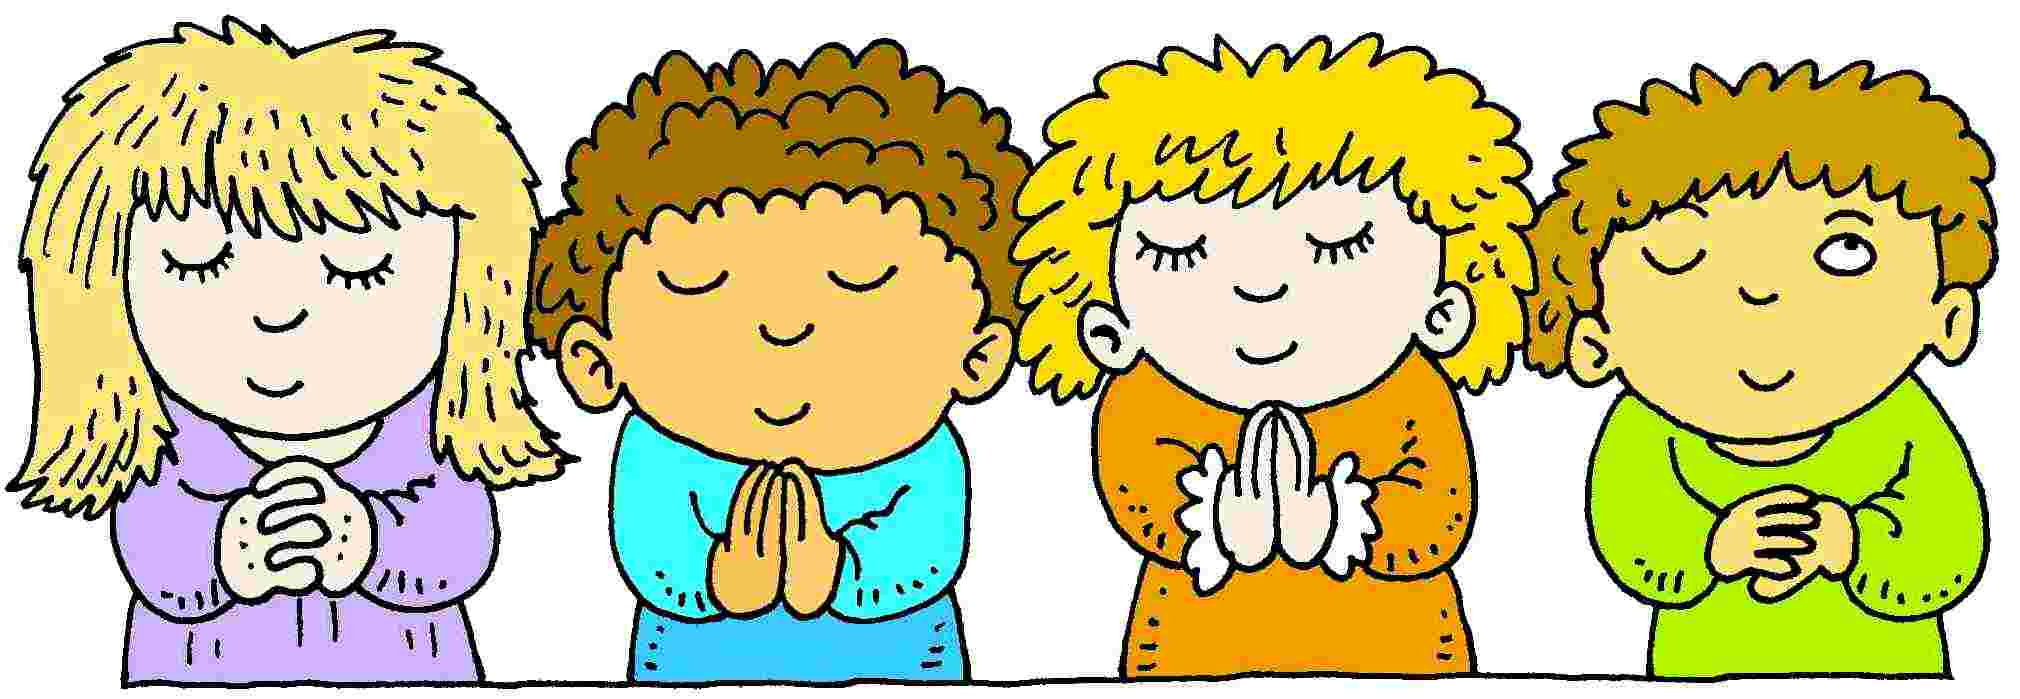 Free Praying Cliparts, Download Free Clip Art, Free Clip Art.